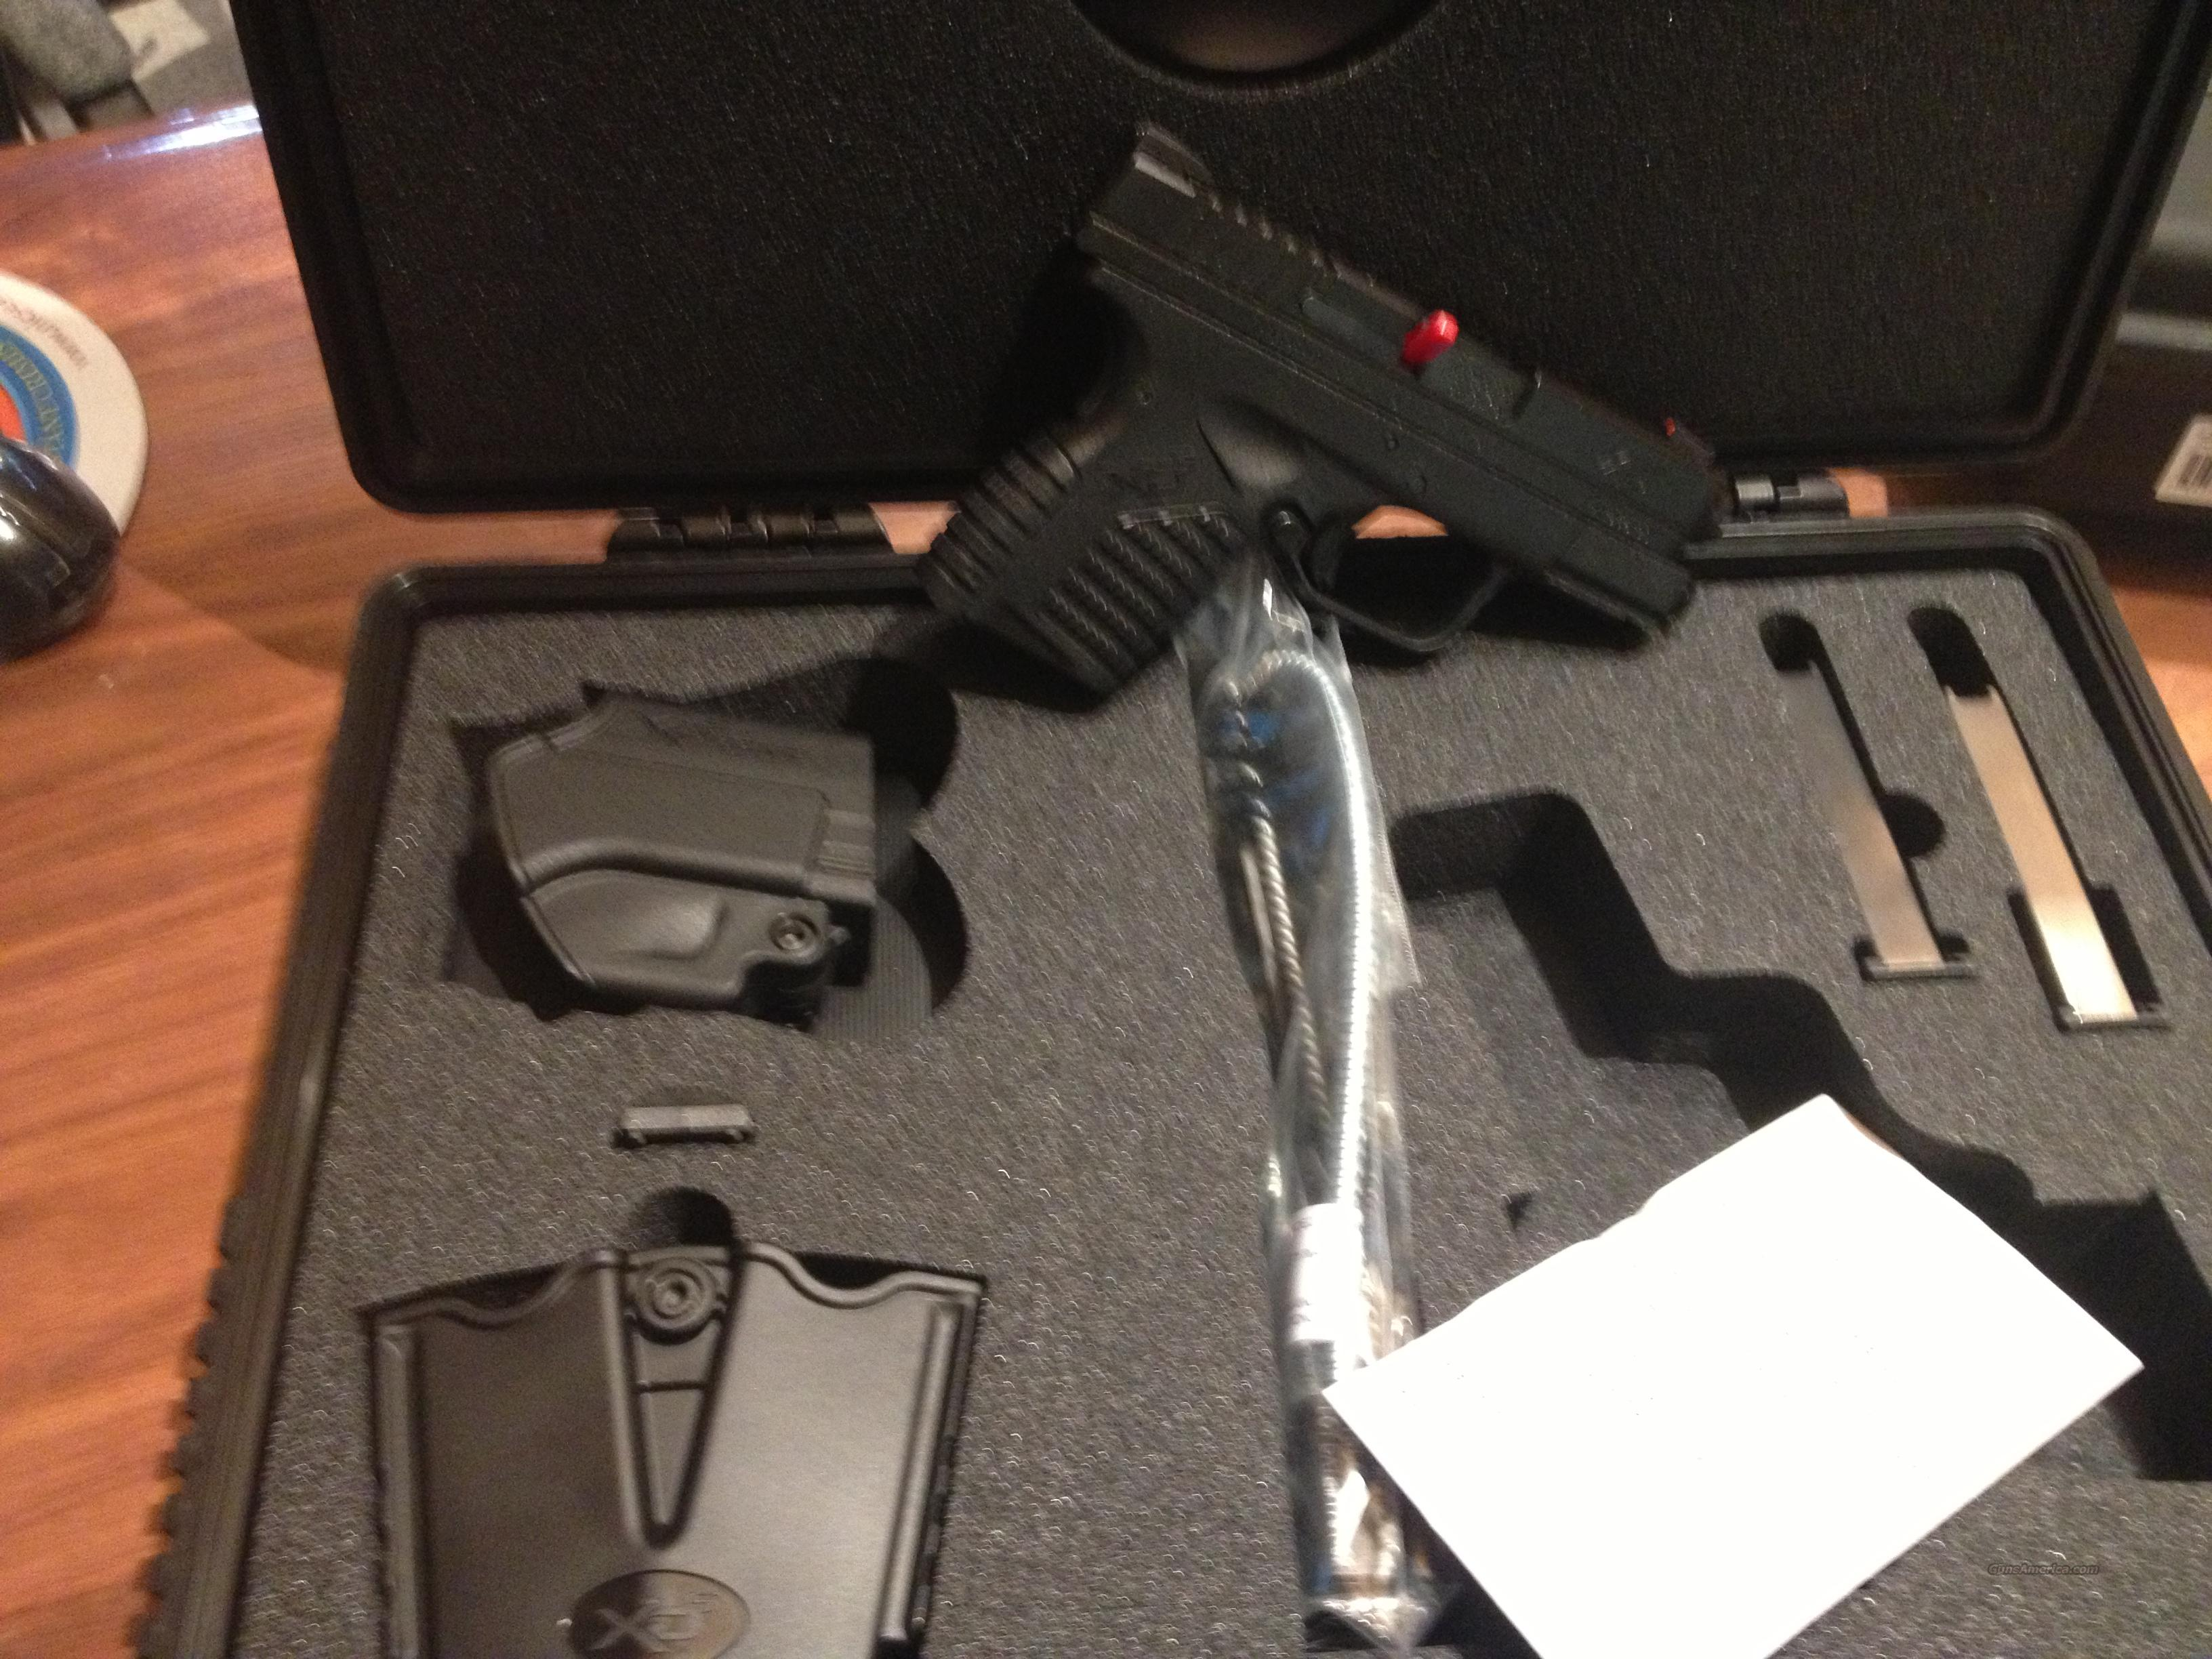 JUST IN XDS 9MM  BRAND NEW READY TO SHIP   Guns > Pistols > Springfield Armory Pistols > XD-S